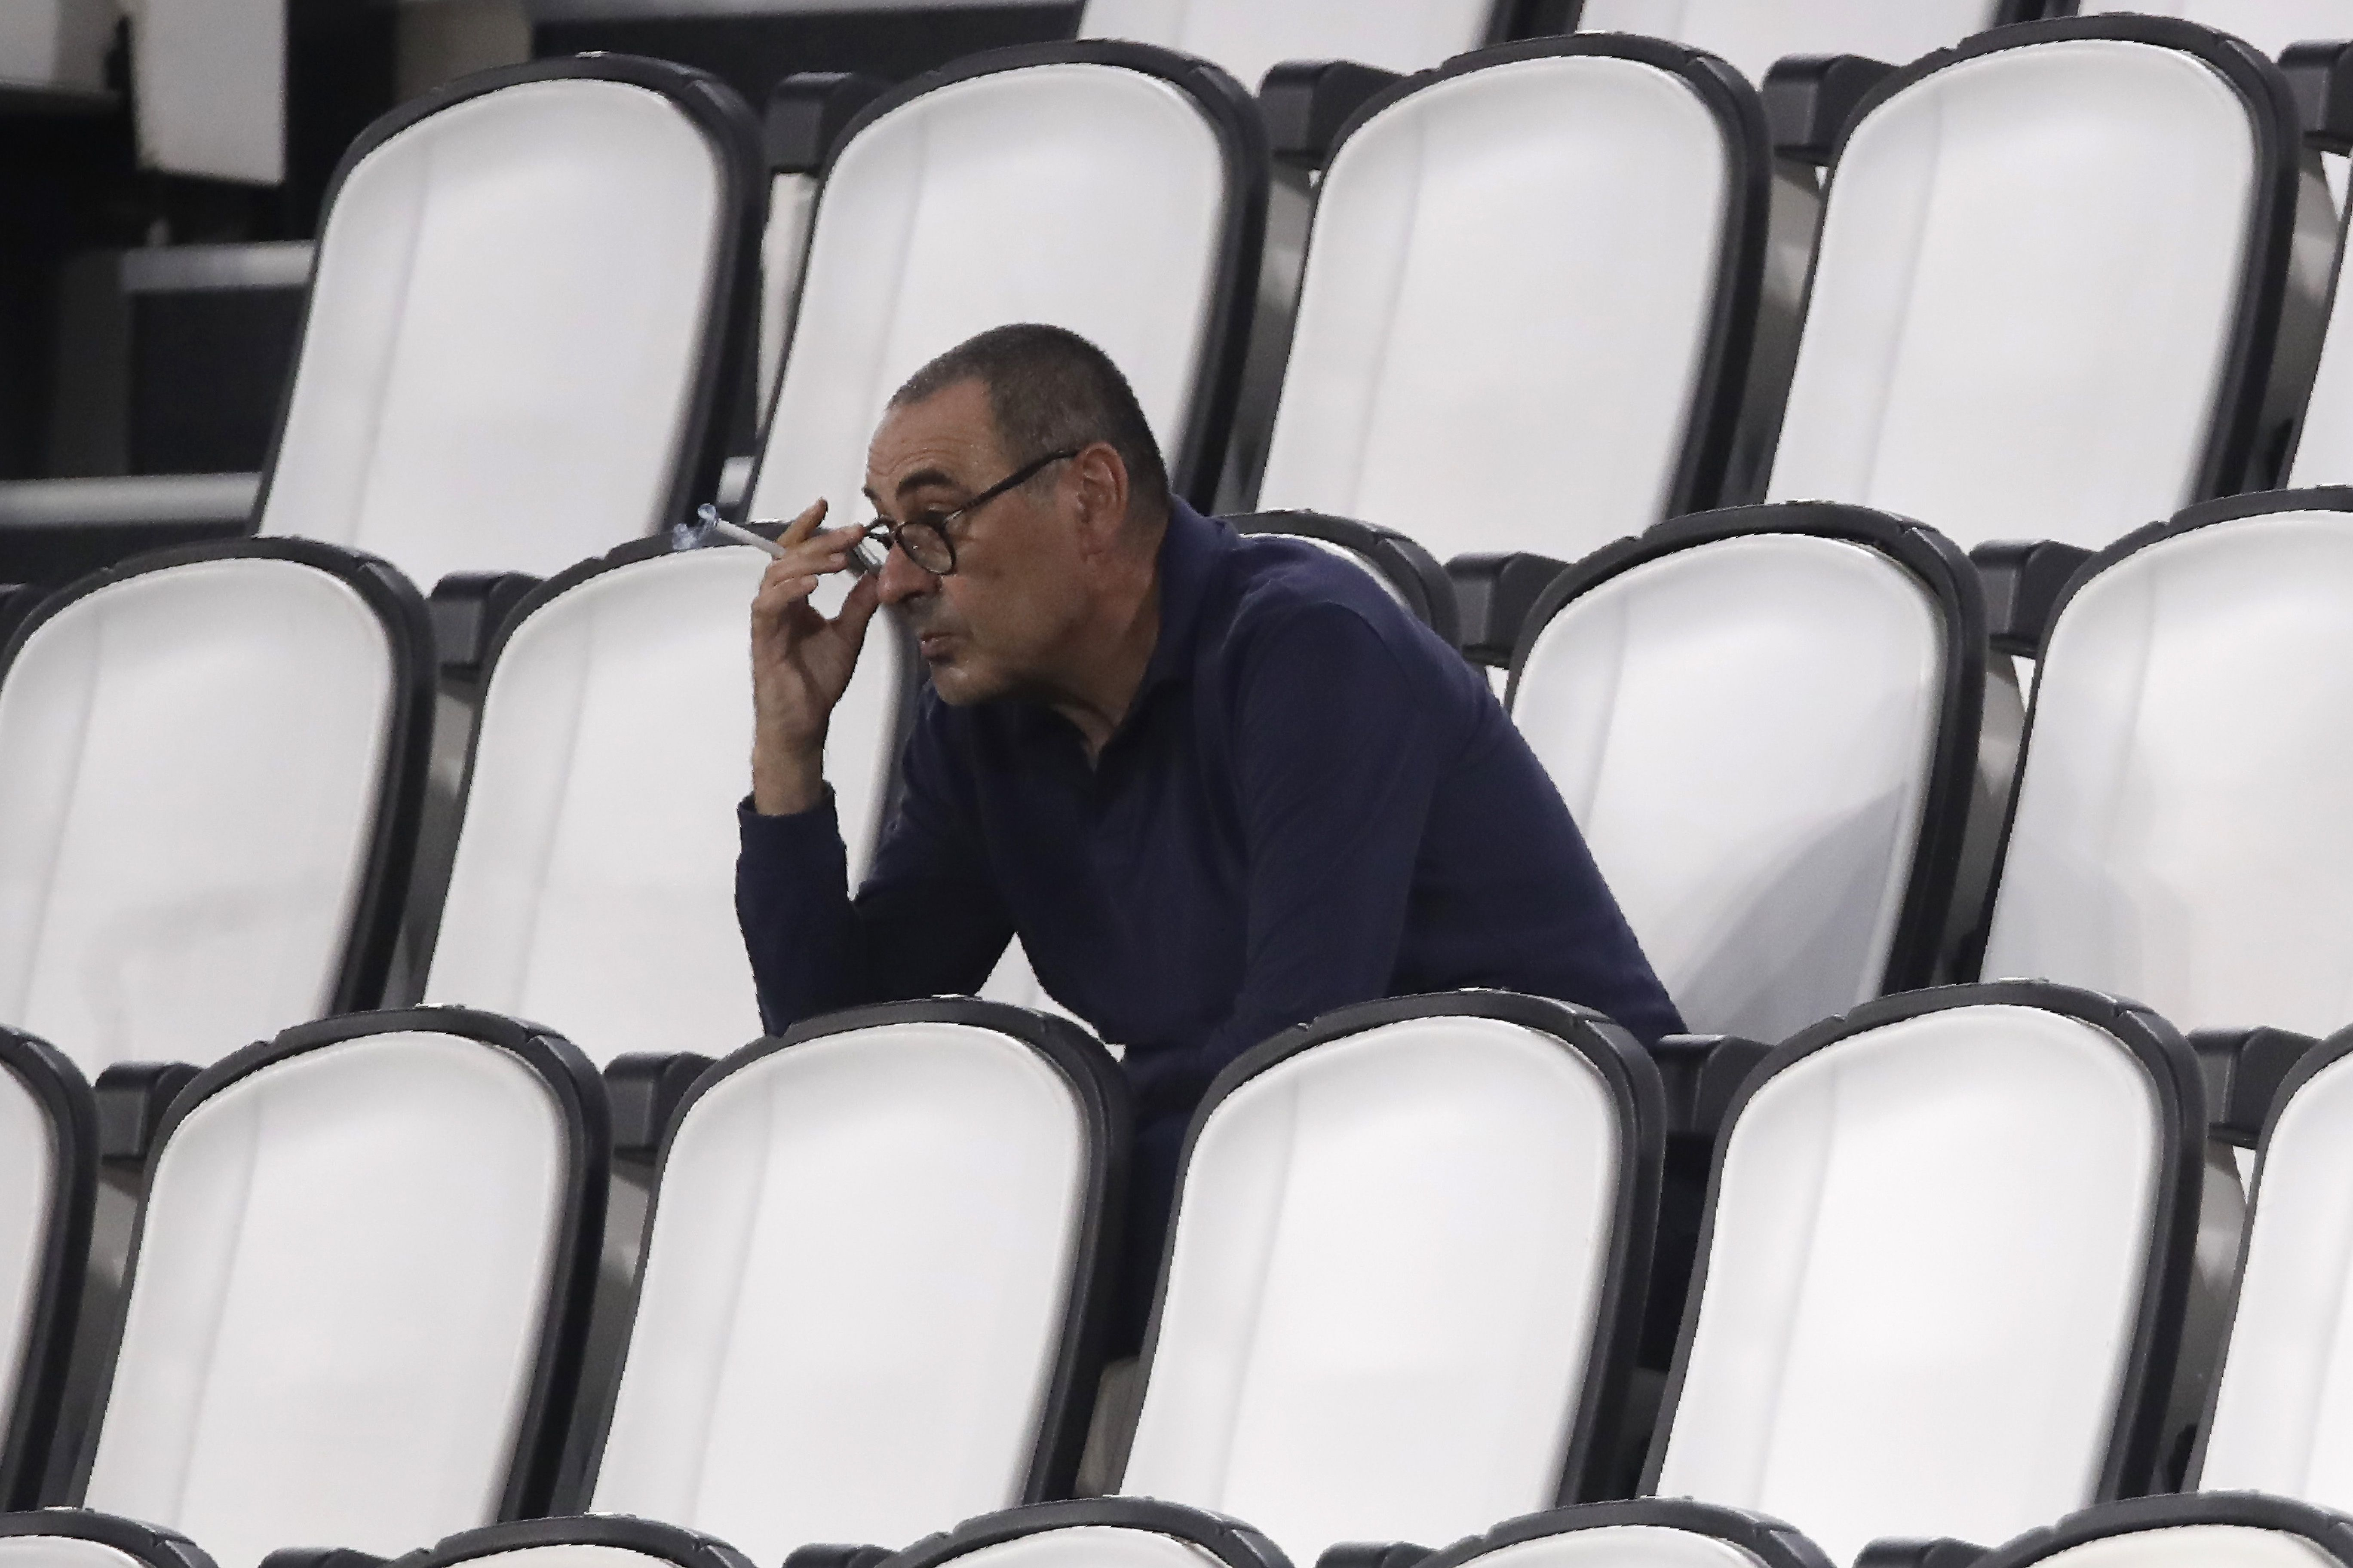 FILE - In this Saturday, Aug. 1, 2020 filer, Juventus' head coach Maurizio Sarri smokes during a Serie A soccer match between Juventus and Roma, at the Allianz stadium in Turin, Italy. Cristiano Ronaldo scored twice but could not prevent Juventus from going out of the Champions League despite a 2-1 victory over Lyon in its rearranged second-leg match Friday. The French team progressed to the quarterfinals on away goals after a 2-2 draw on aggregate. (AP Photo/Luca Bruno, File)